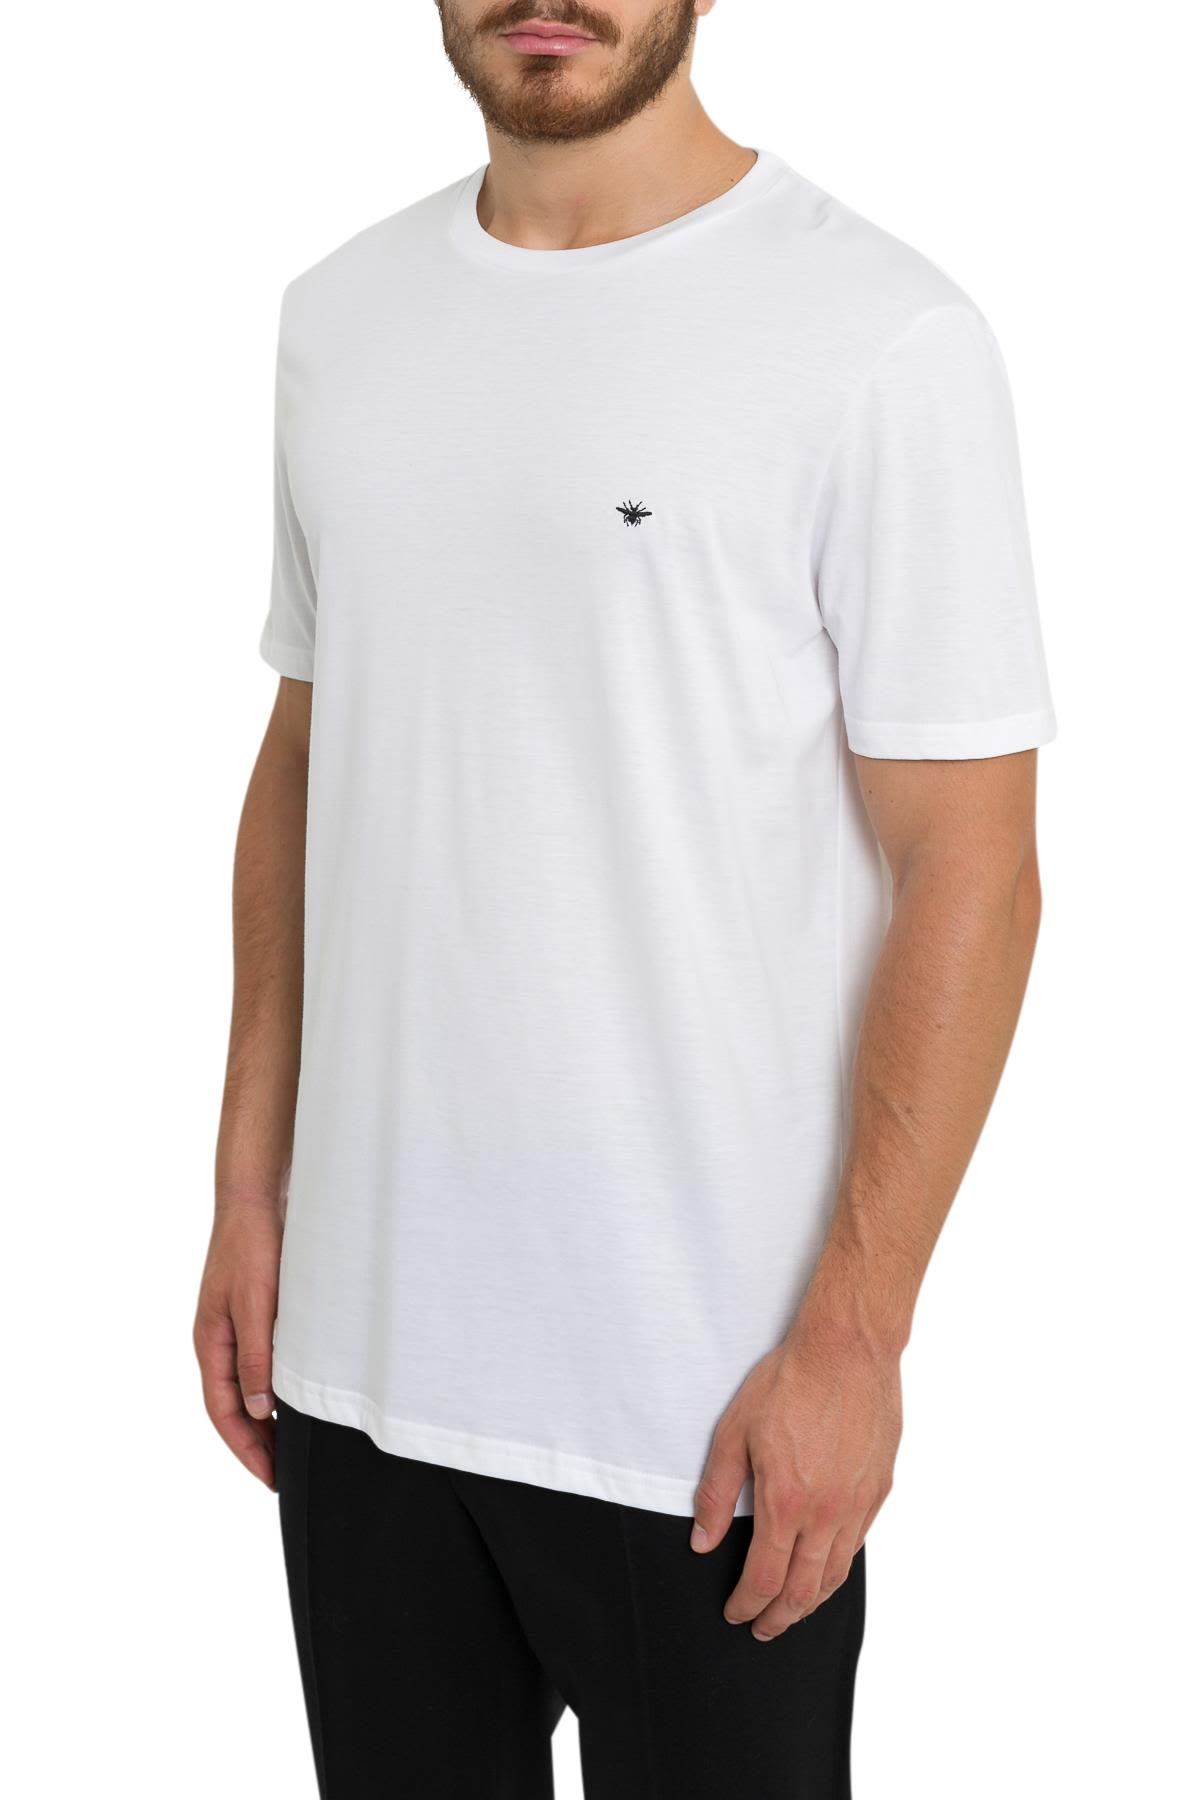 Dior Homme Dior Homme Bee Embroidery Tee